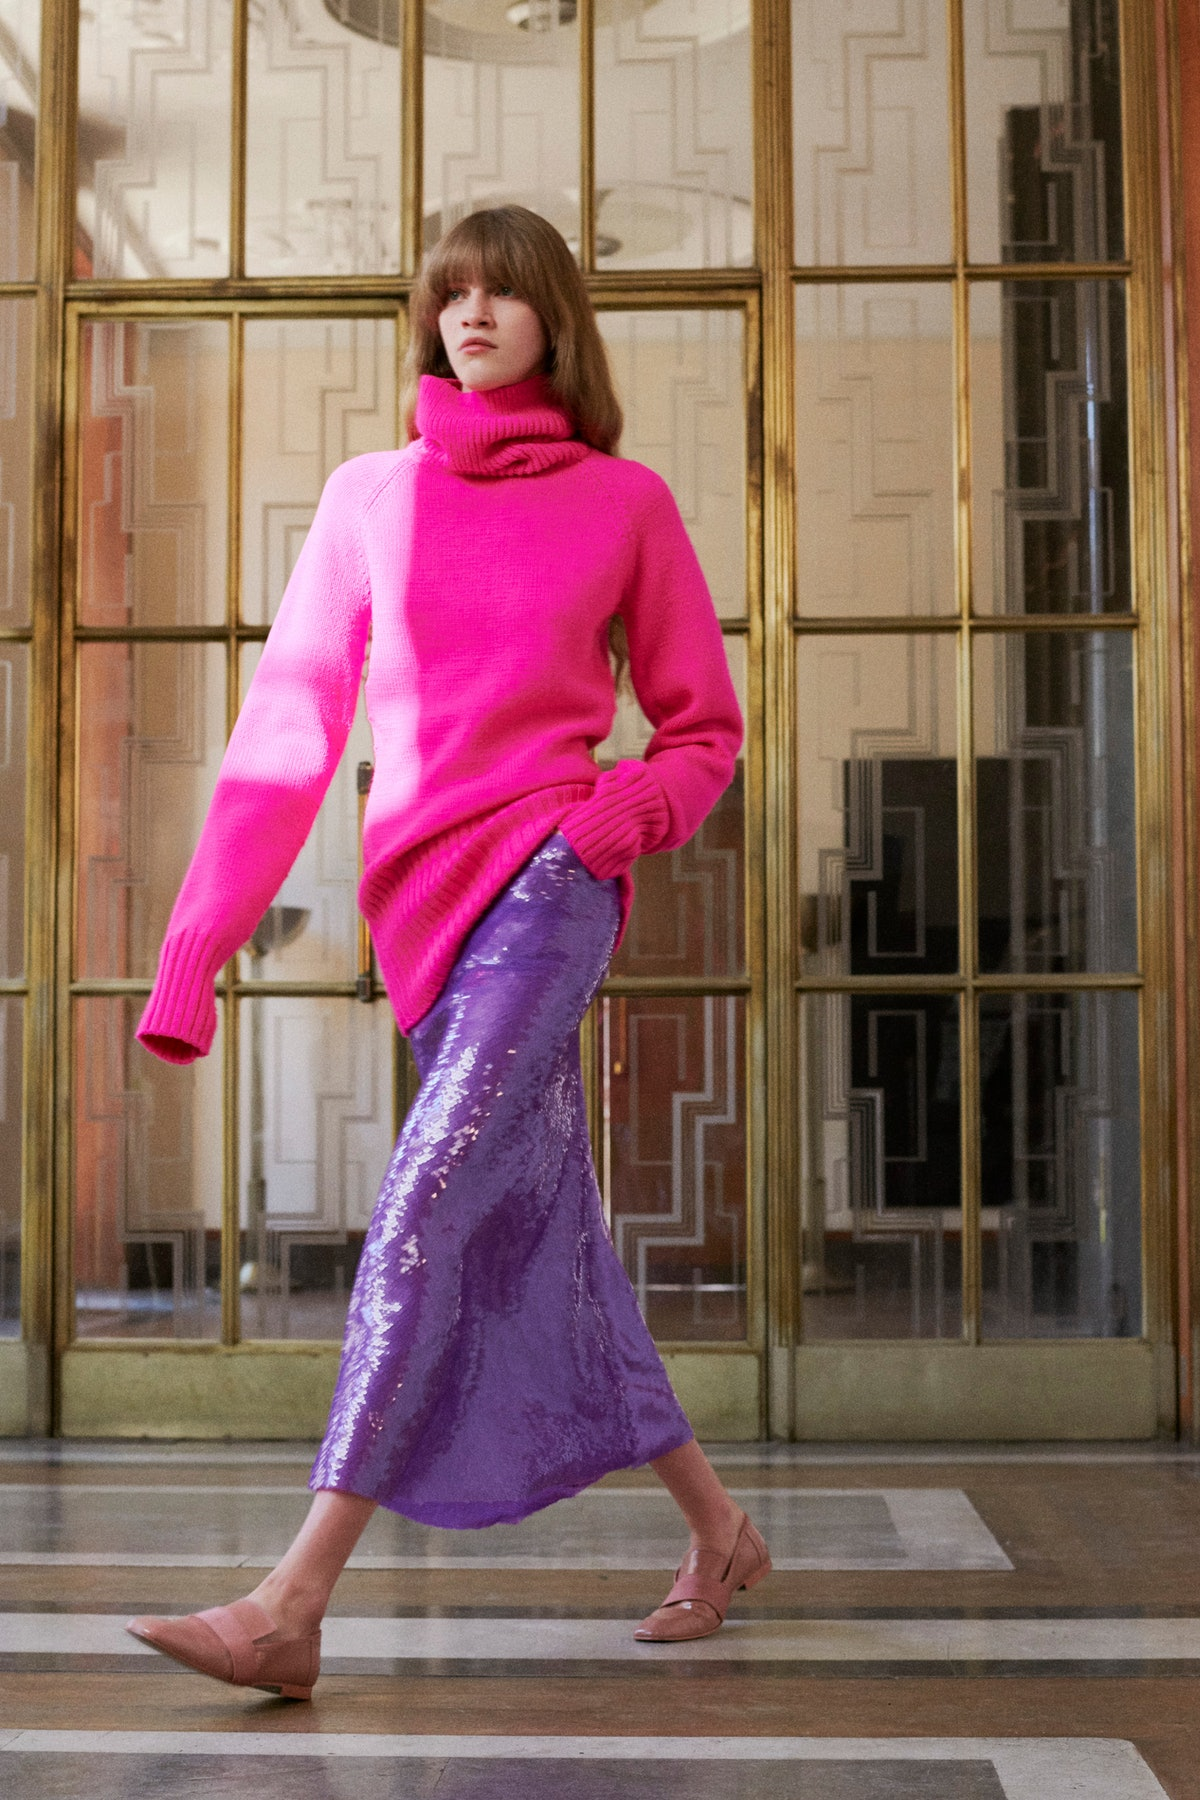 model in pink sweater and purple sequin skirt